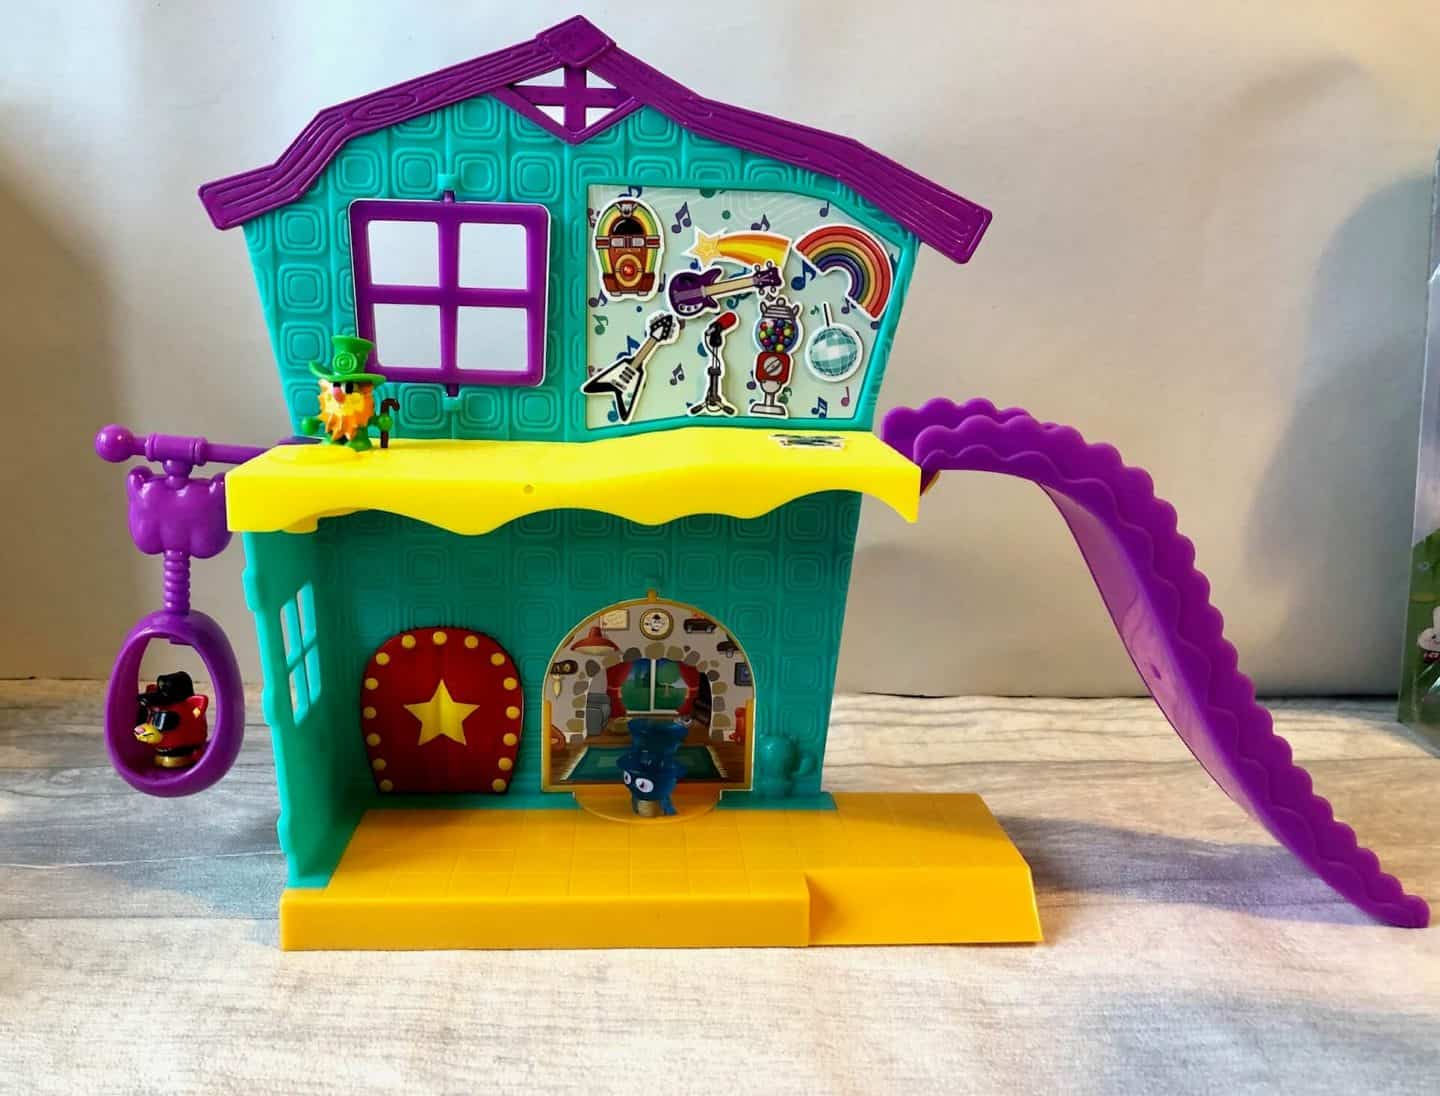 Blingo's Party House Playset